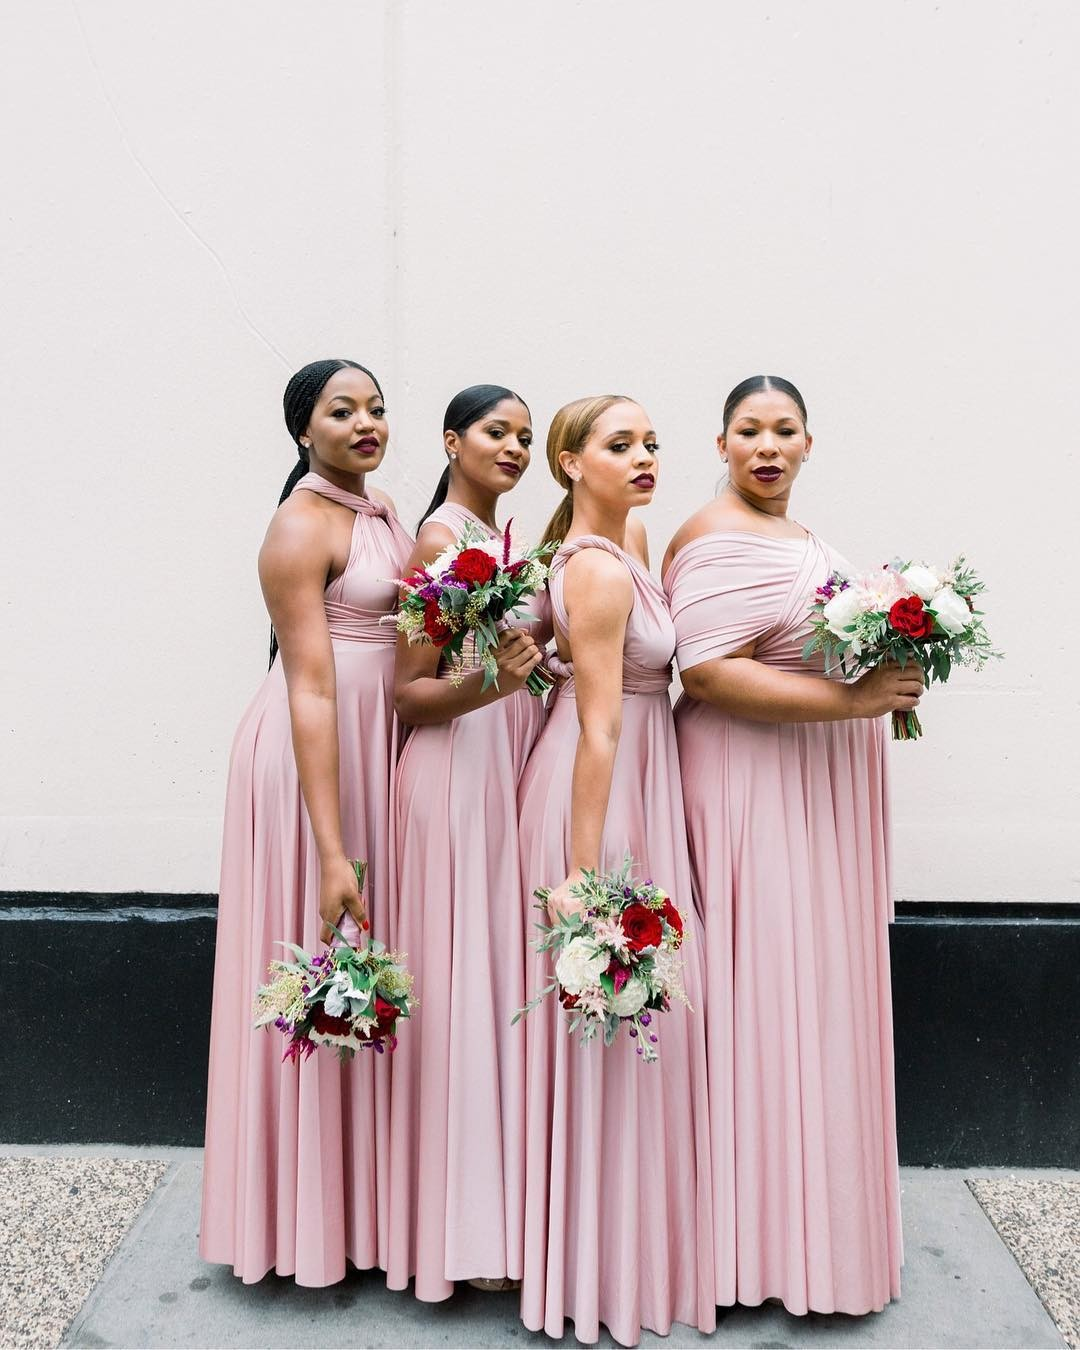 These bridesmaids are stopping traffic